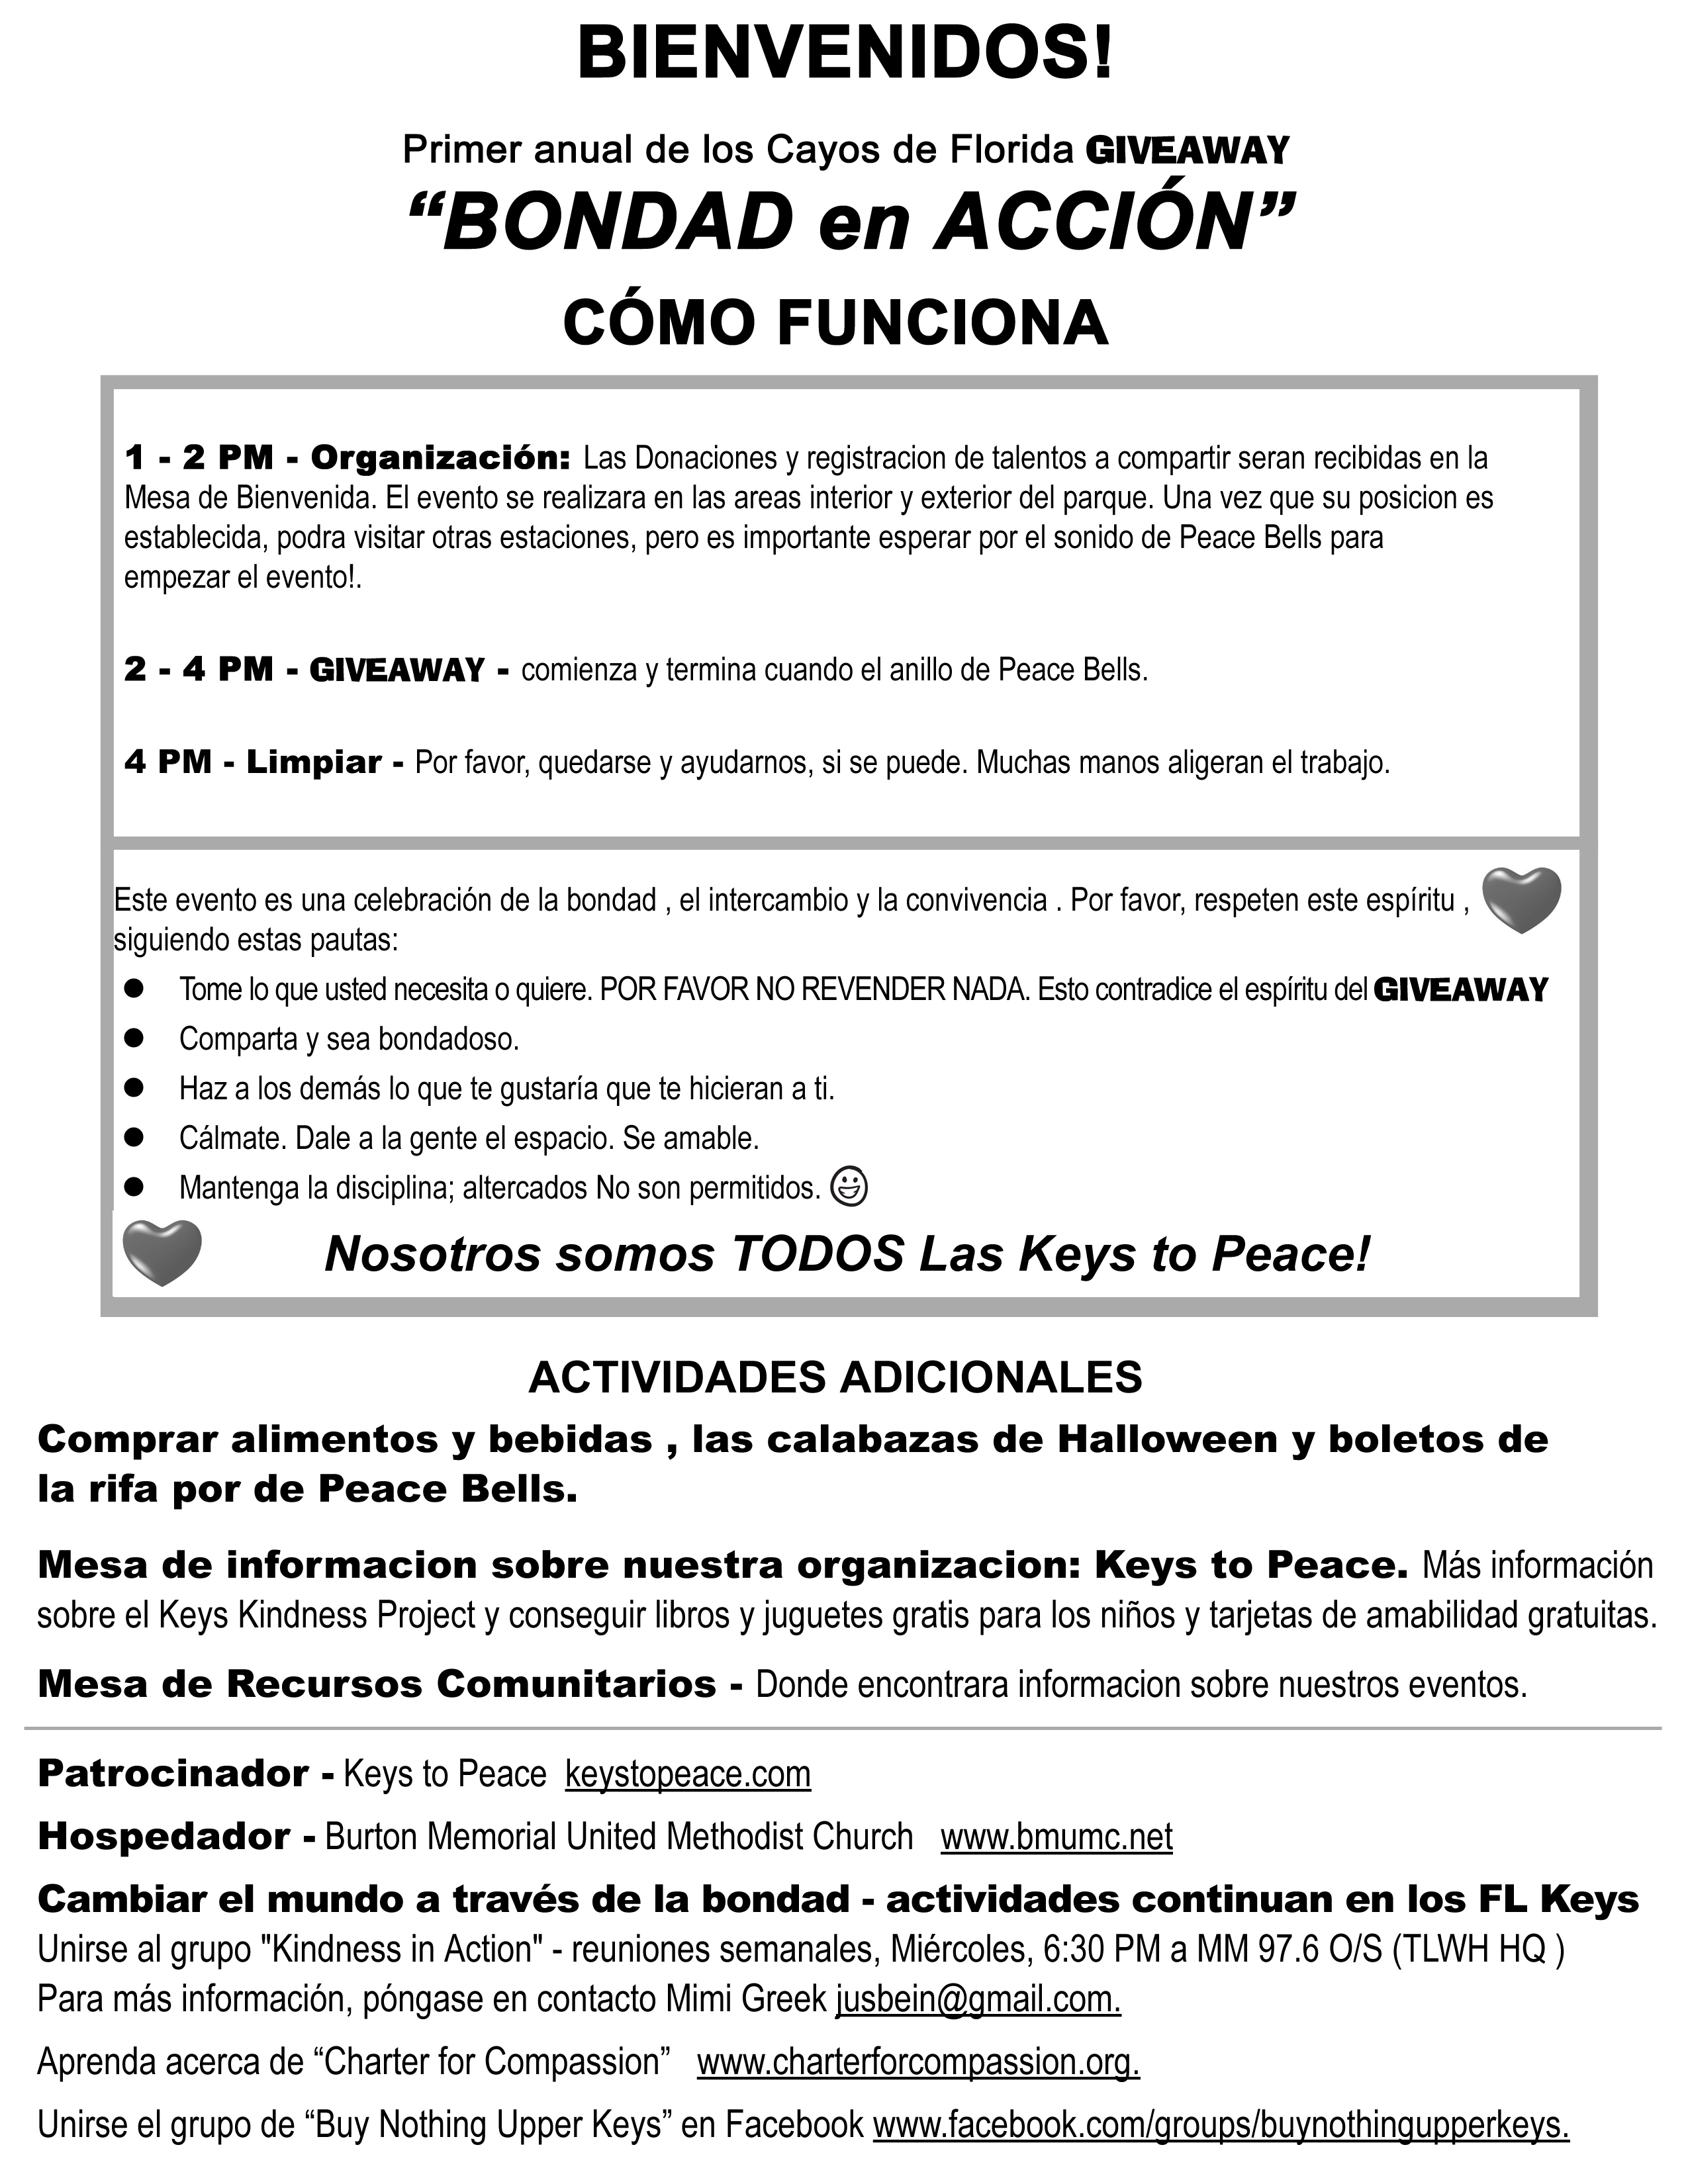 giveaway instructions (Spanish)